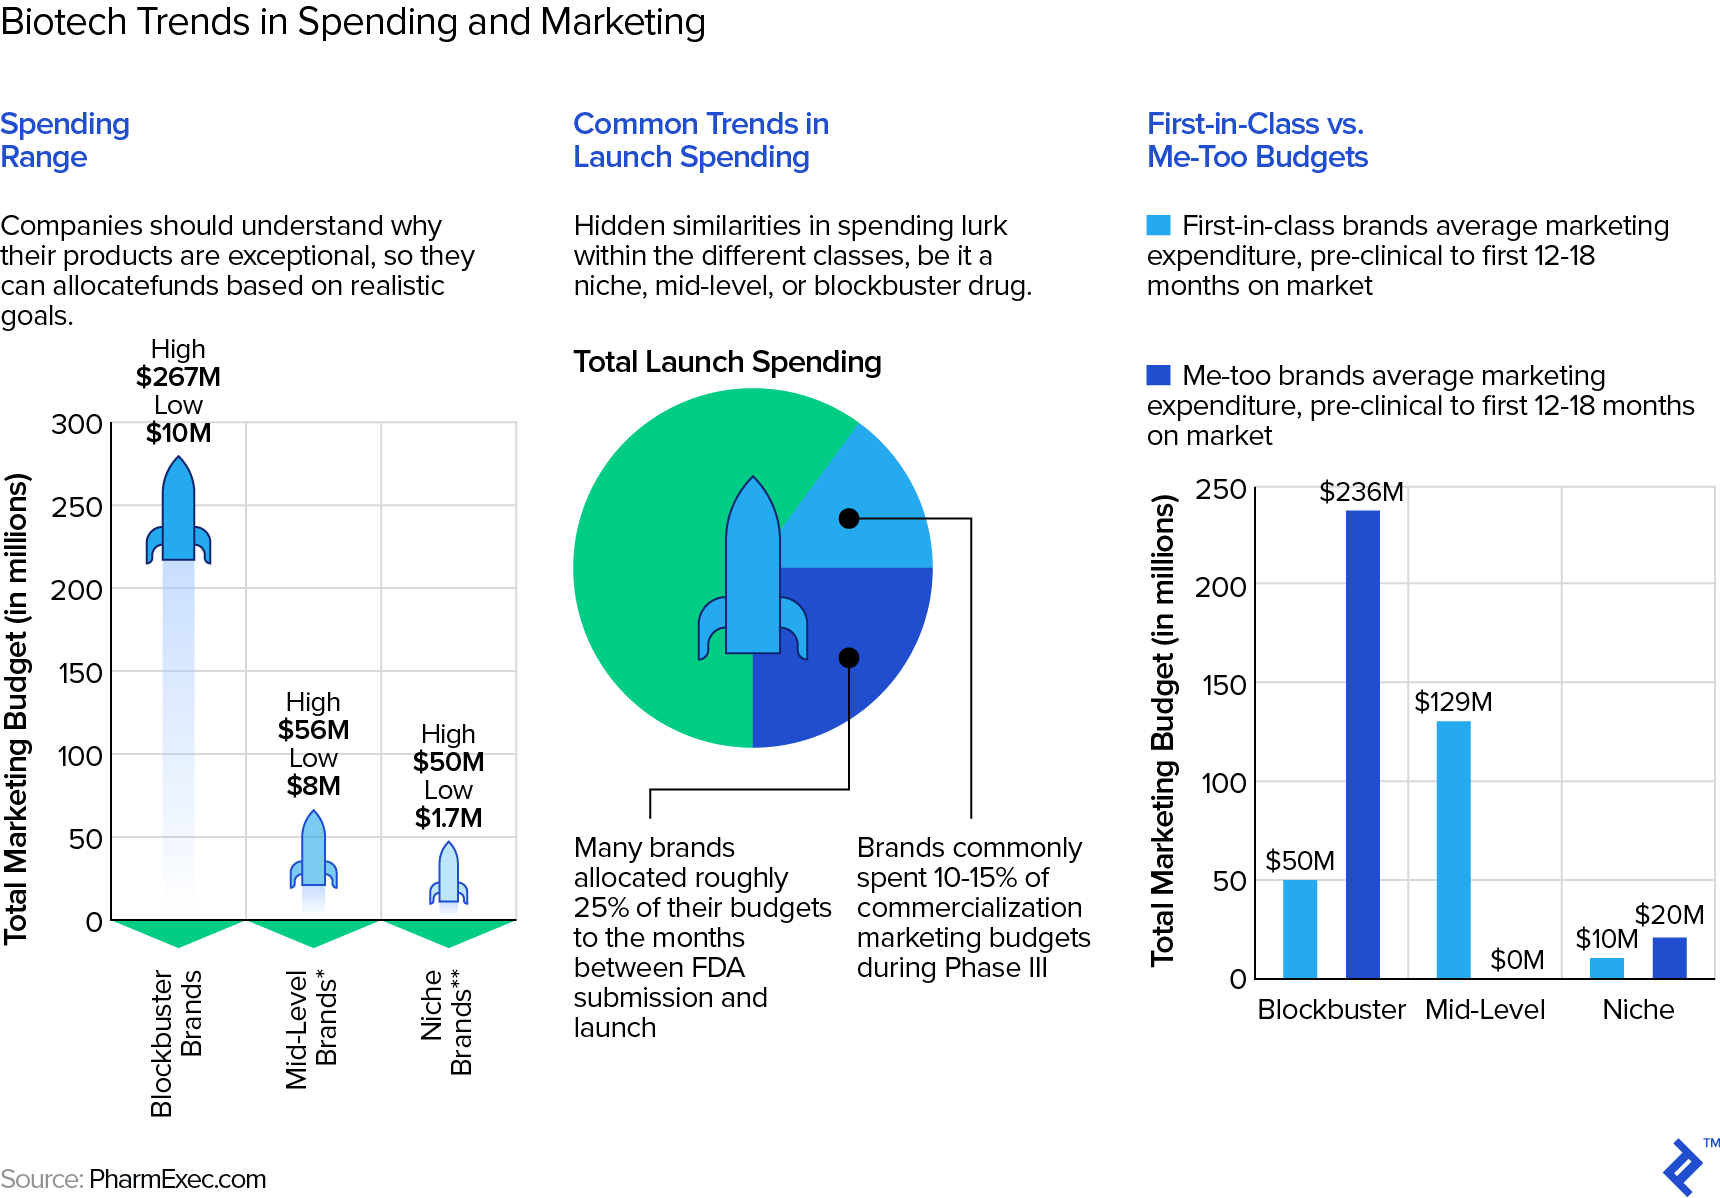 Visualizations of biotech trends in spending and marketing